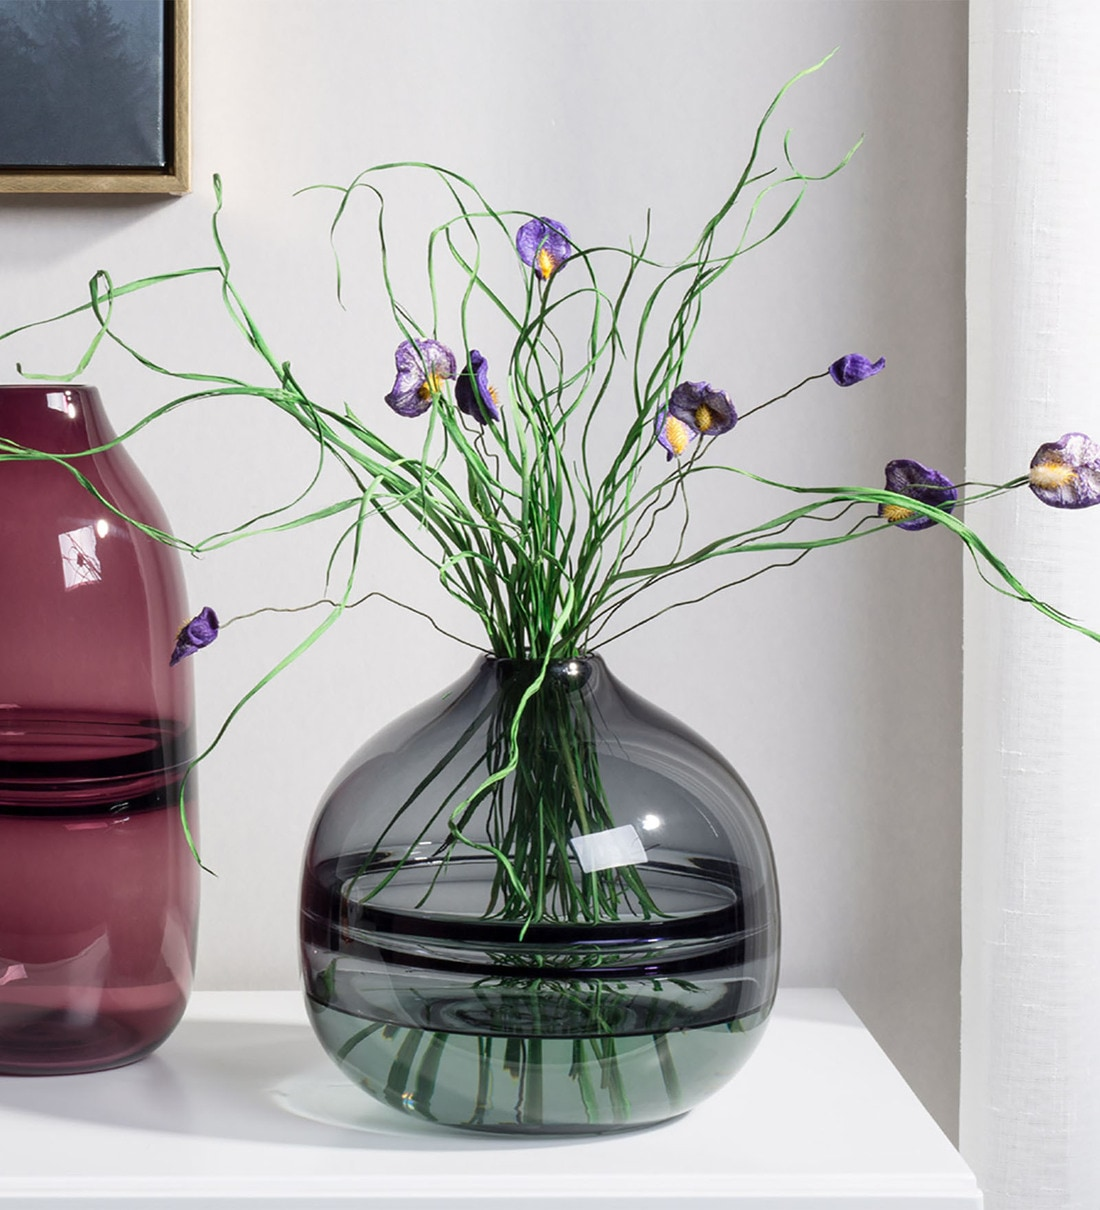 Buy Grey Hand Blown Art Unique Ripple Design Centerpiece Flower Glass Vase By Casamotion Online Modern And Contemporary Vases Vases Home Decor Pepperfry Product